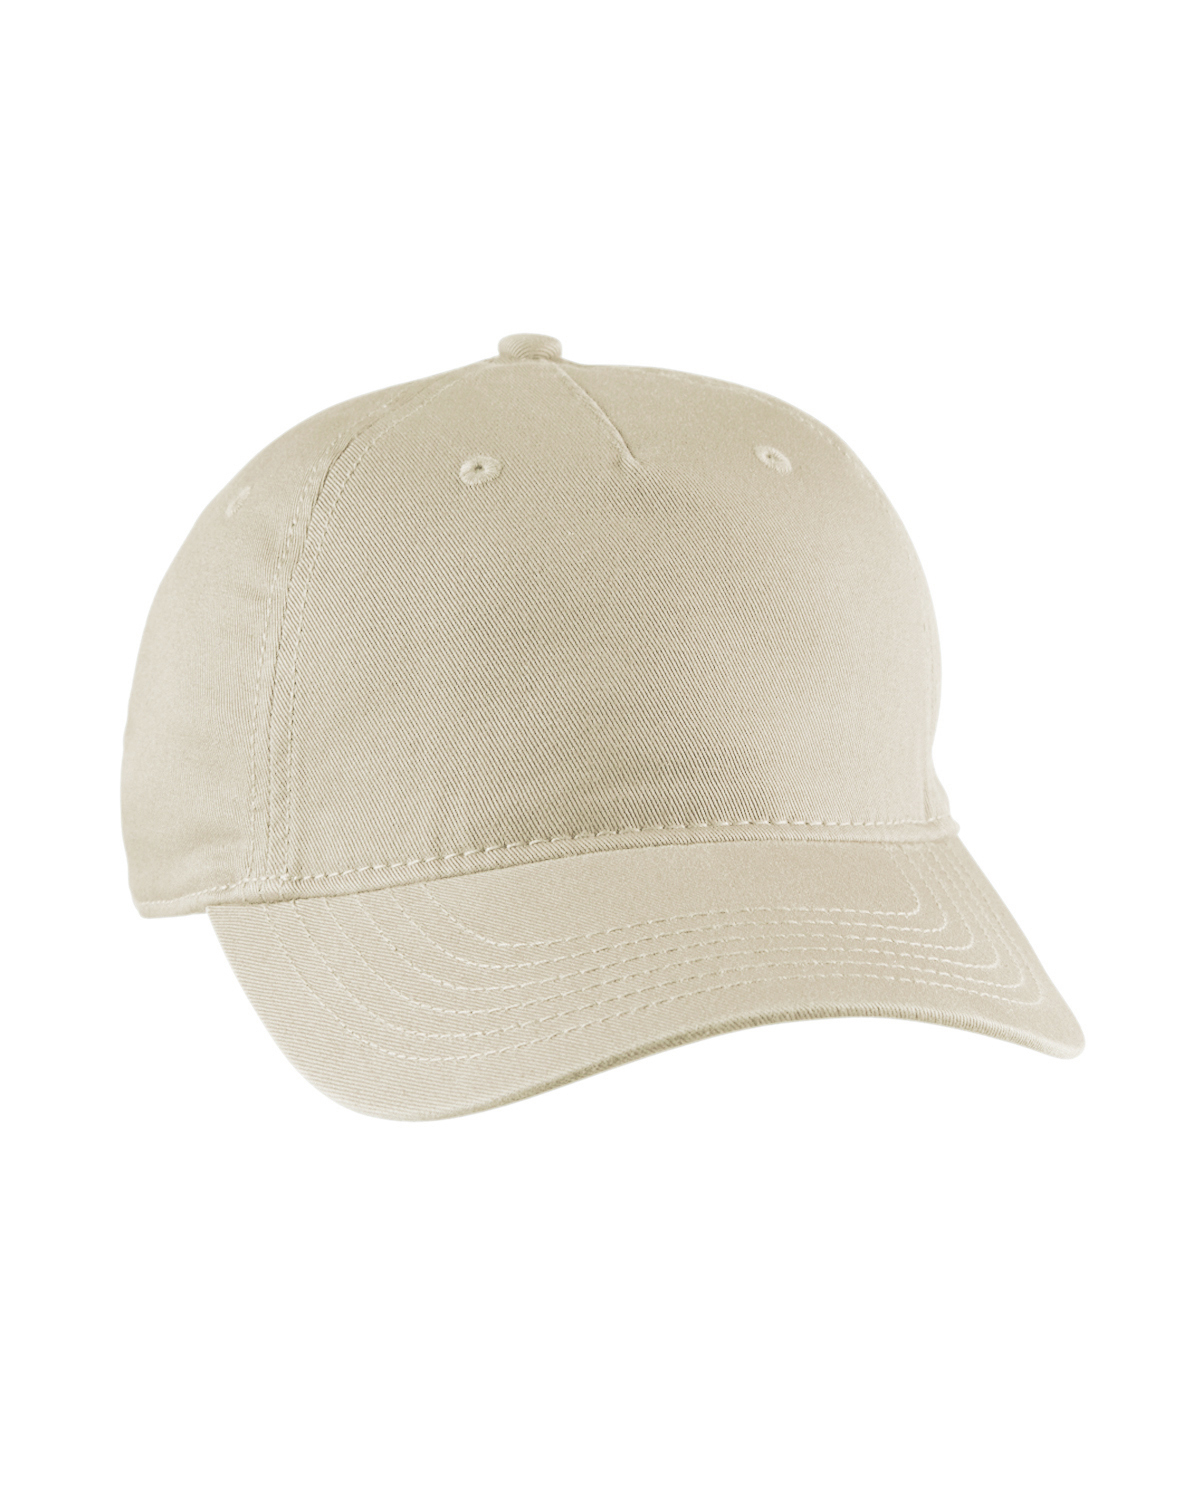 c68a2a74be4f0 Econscious EC7087 Unisex Twill 5-Panel Unstructured Hat - JiffyShirts.com